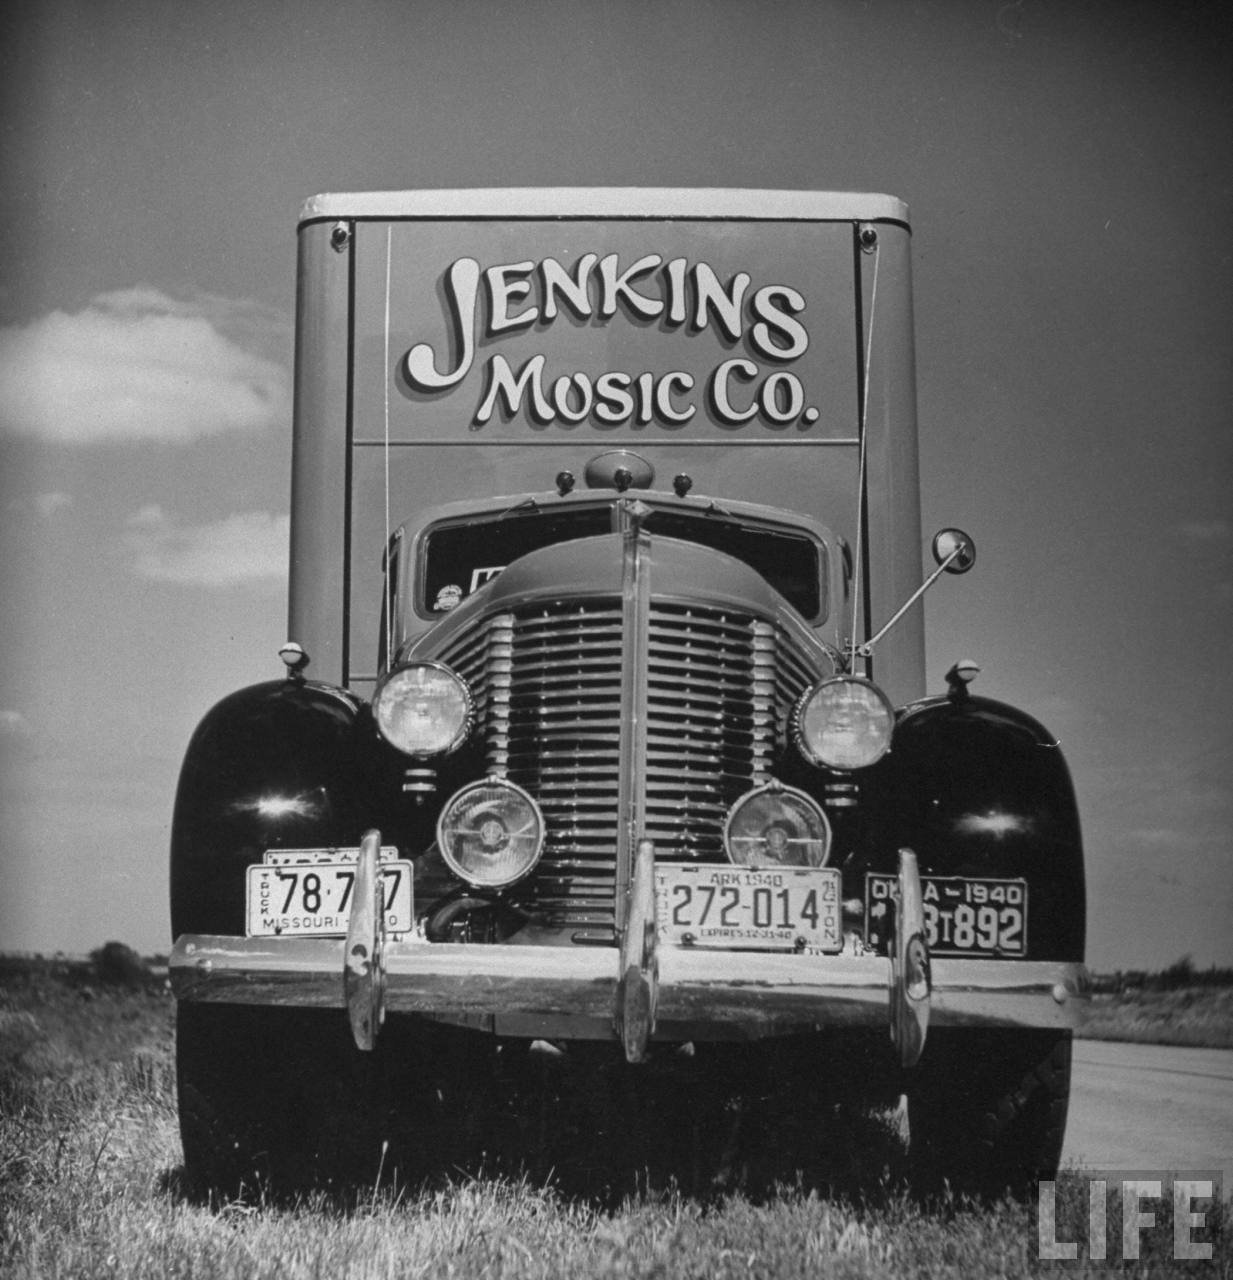 Jenkins Music Company truck containing pianos (from 1940 Life Magazine article)